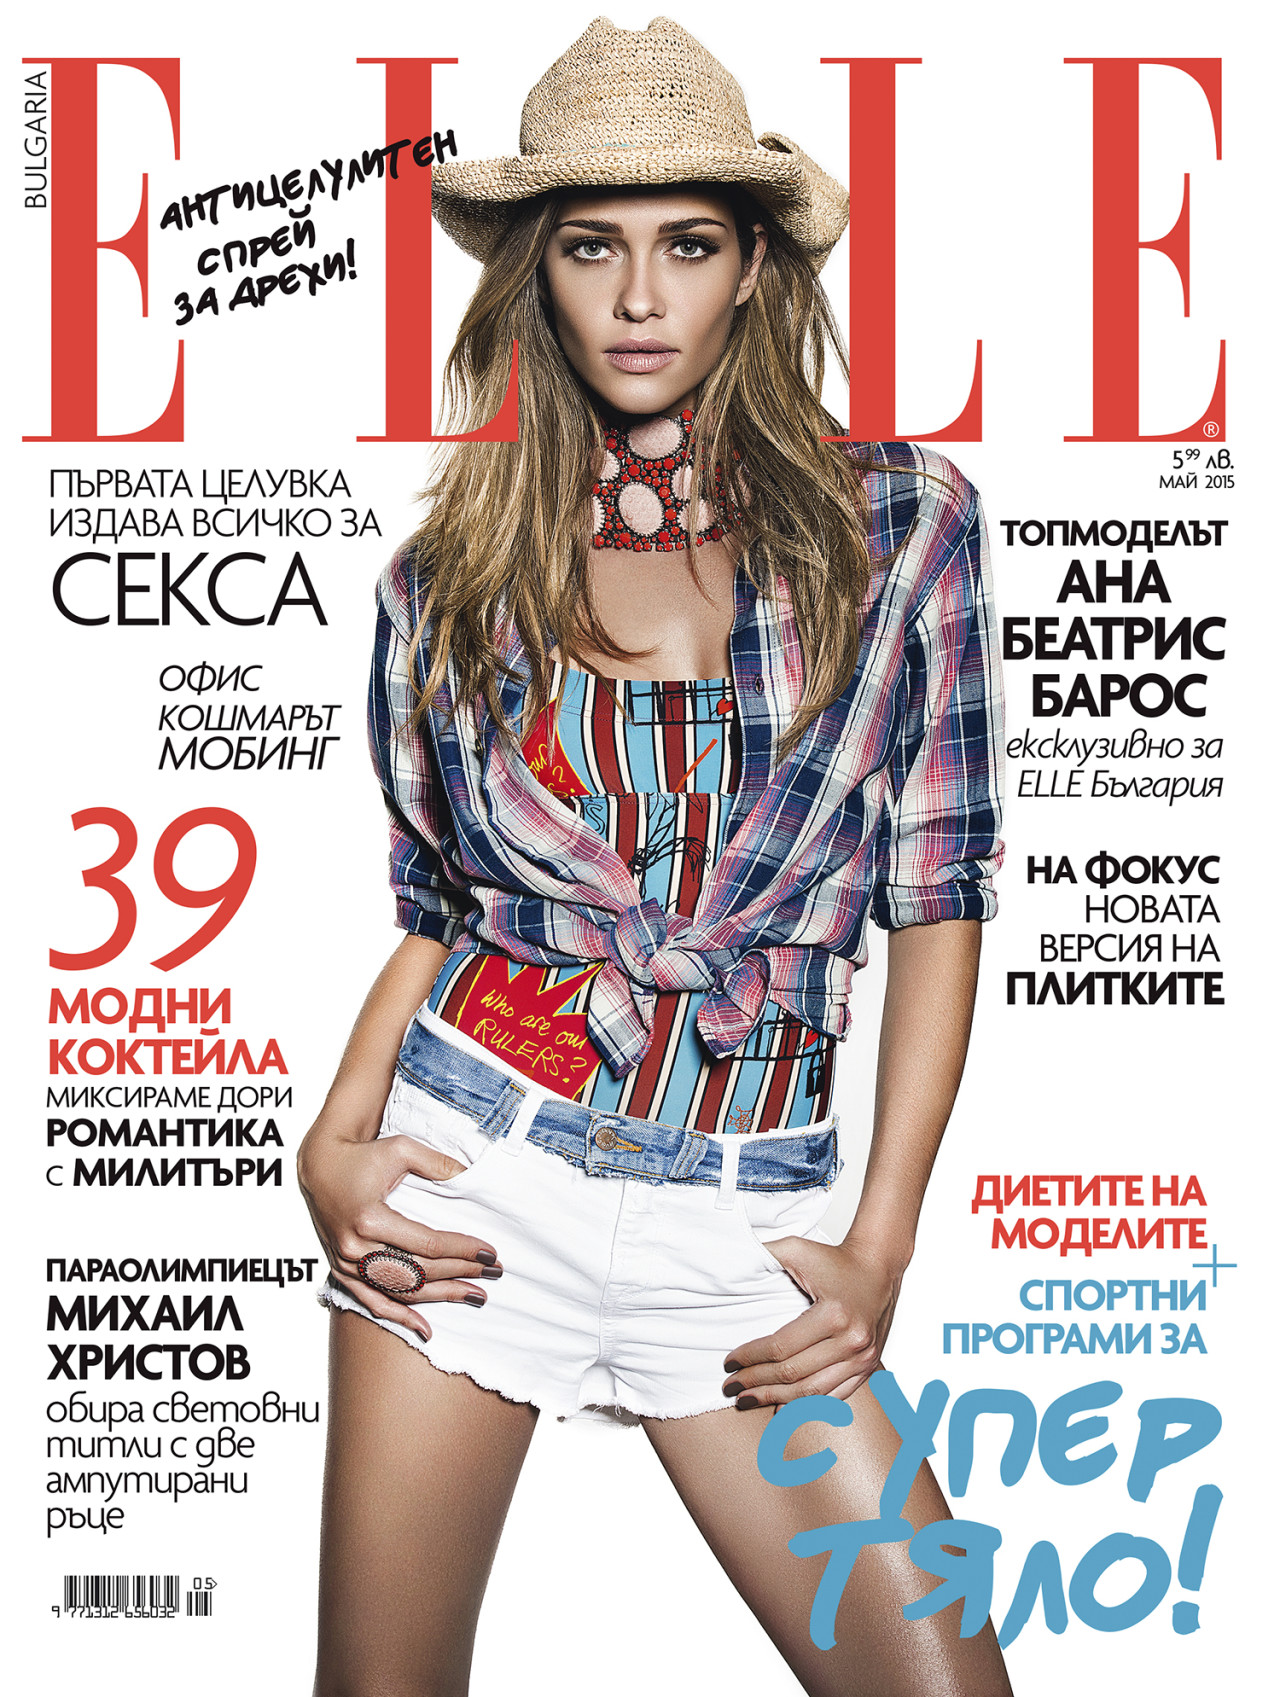 ELLE COVER SHOOTING WITH ANA BEATRIZ BARROS  BY STEFAN IMIELSKI